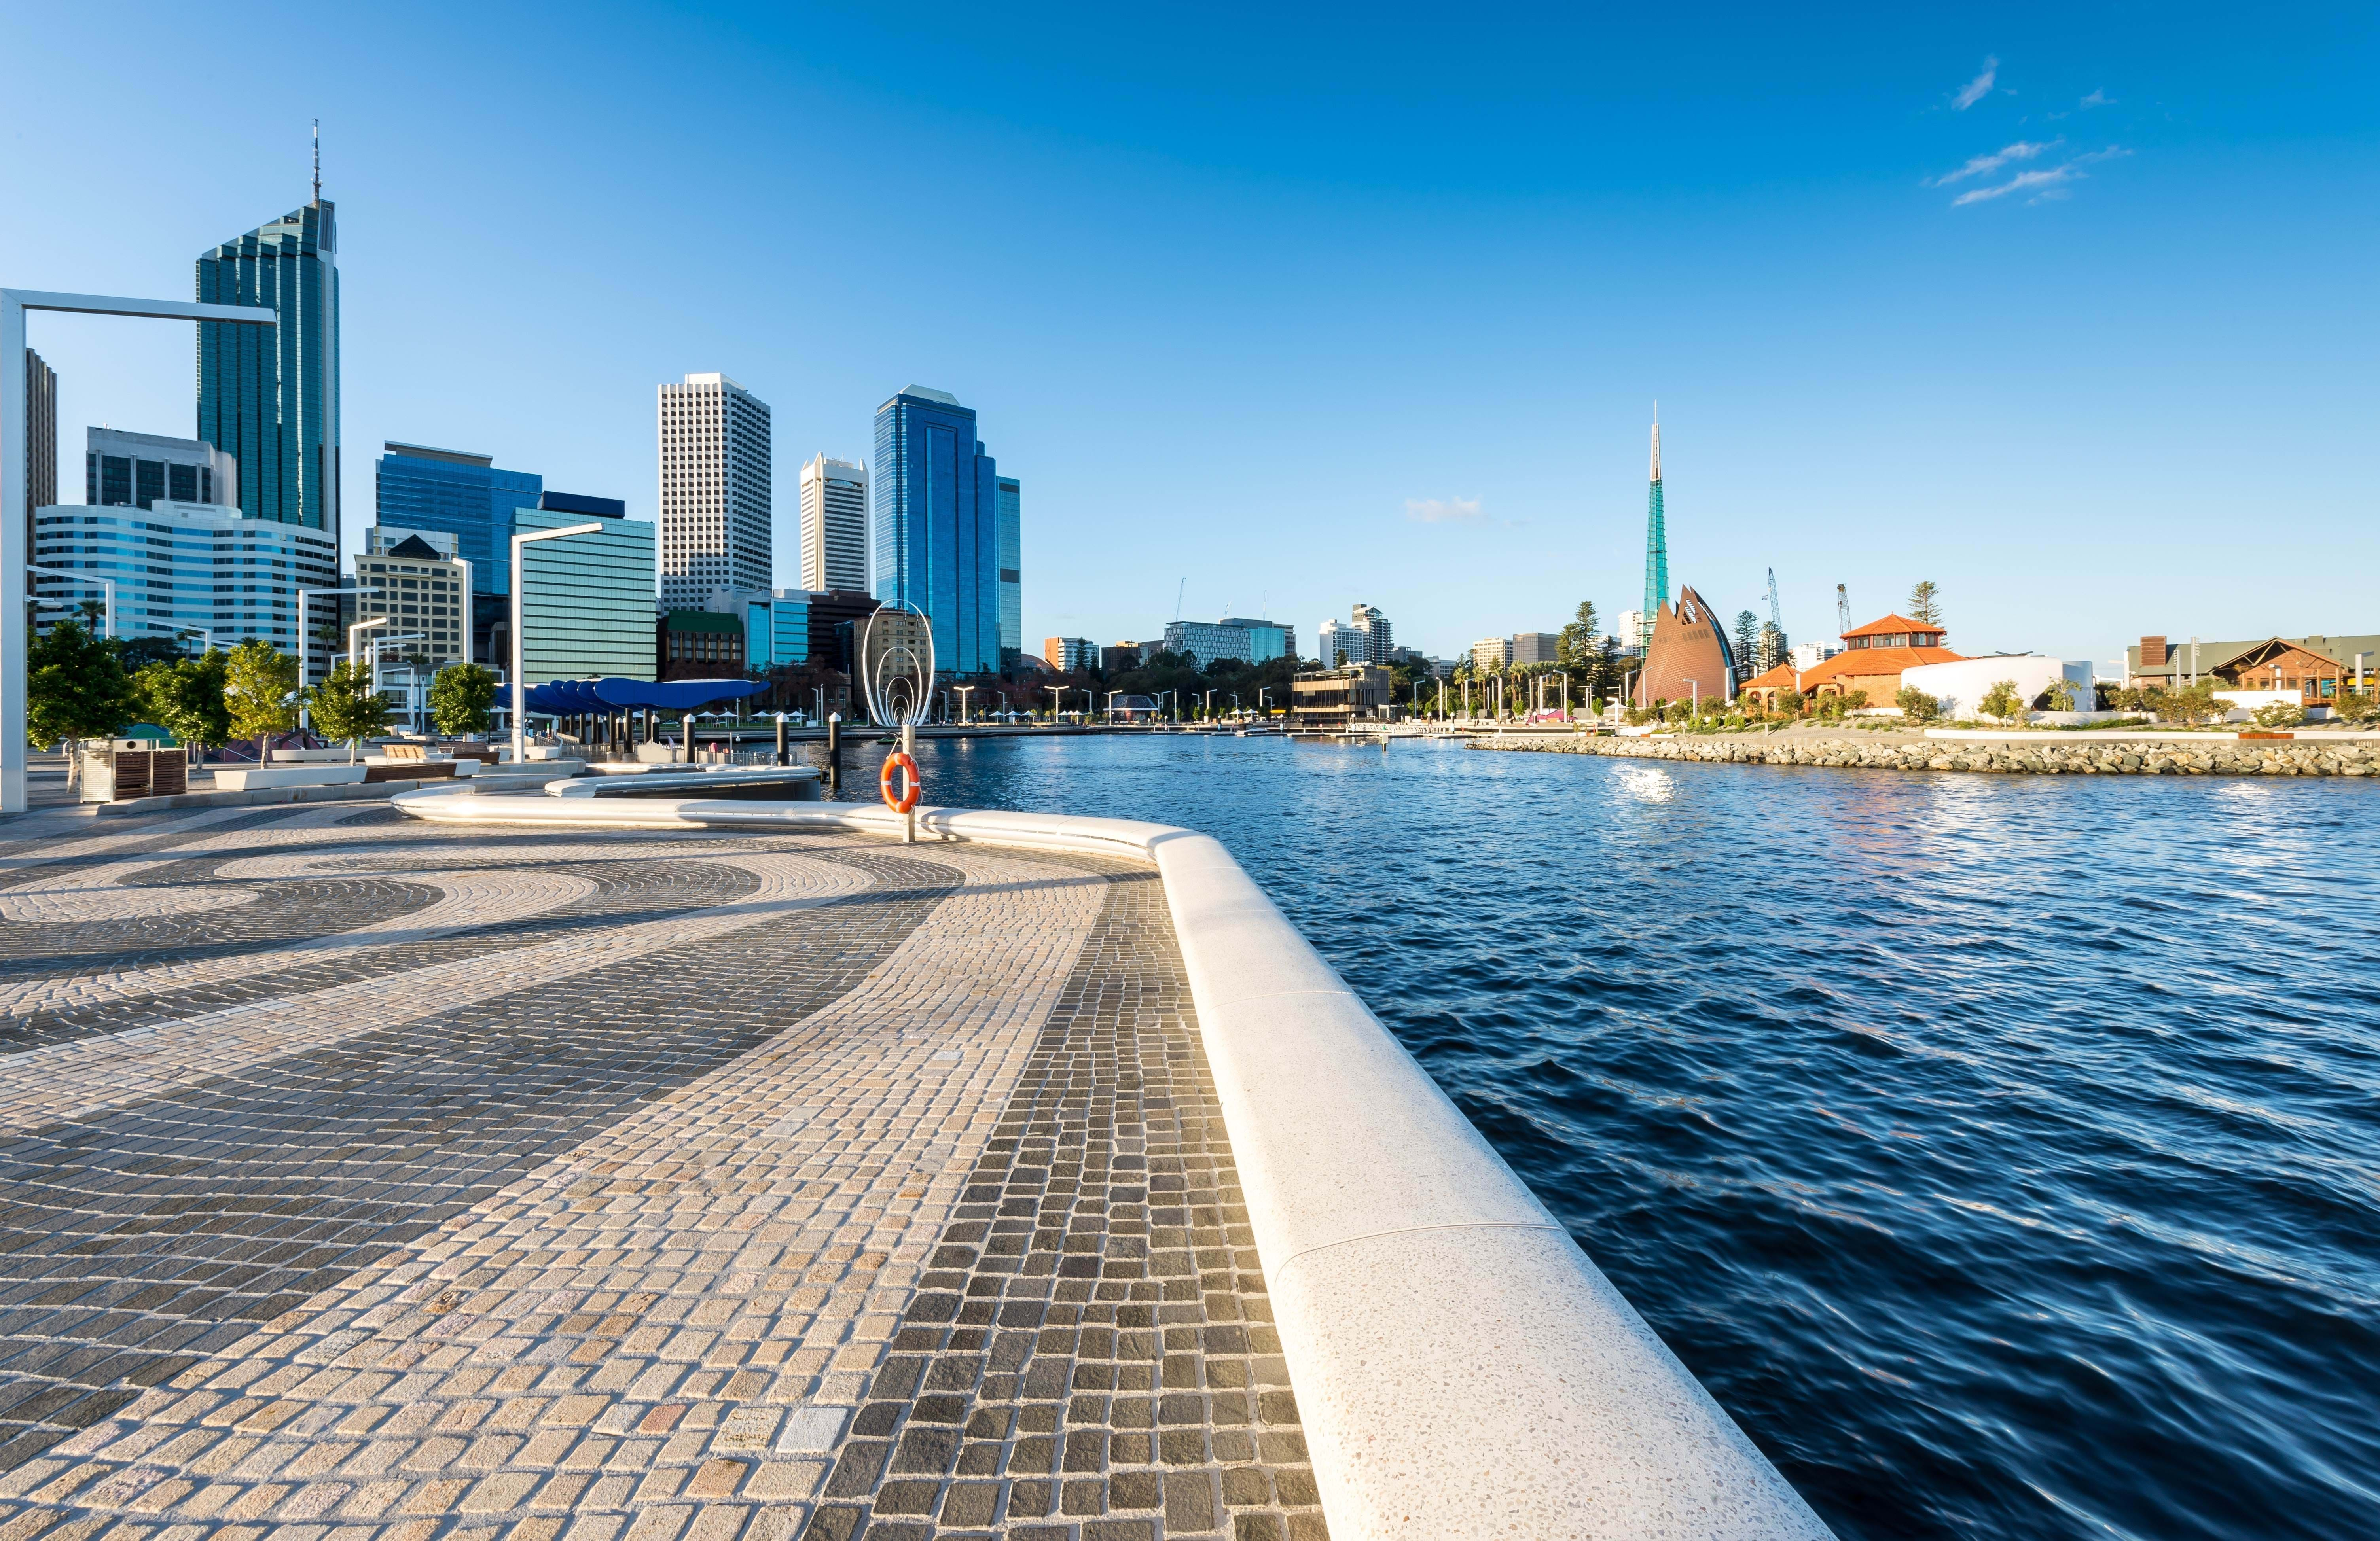 elisabeth quay in perth in australia hang out here when you become a student in perth